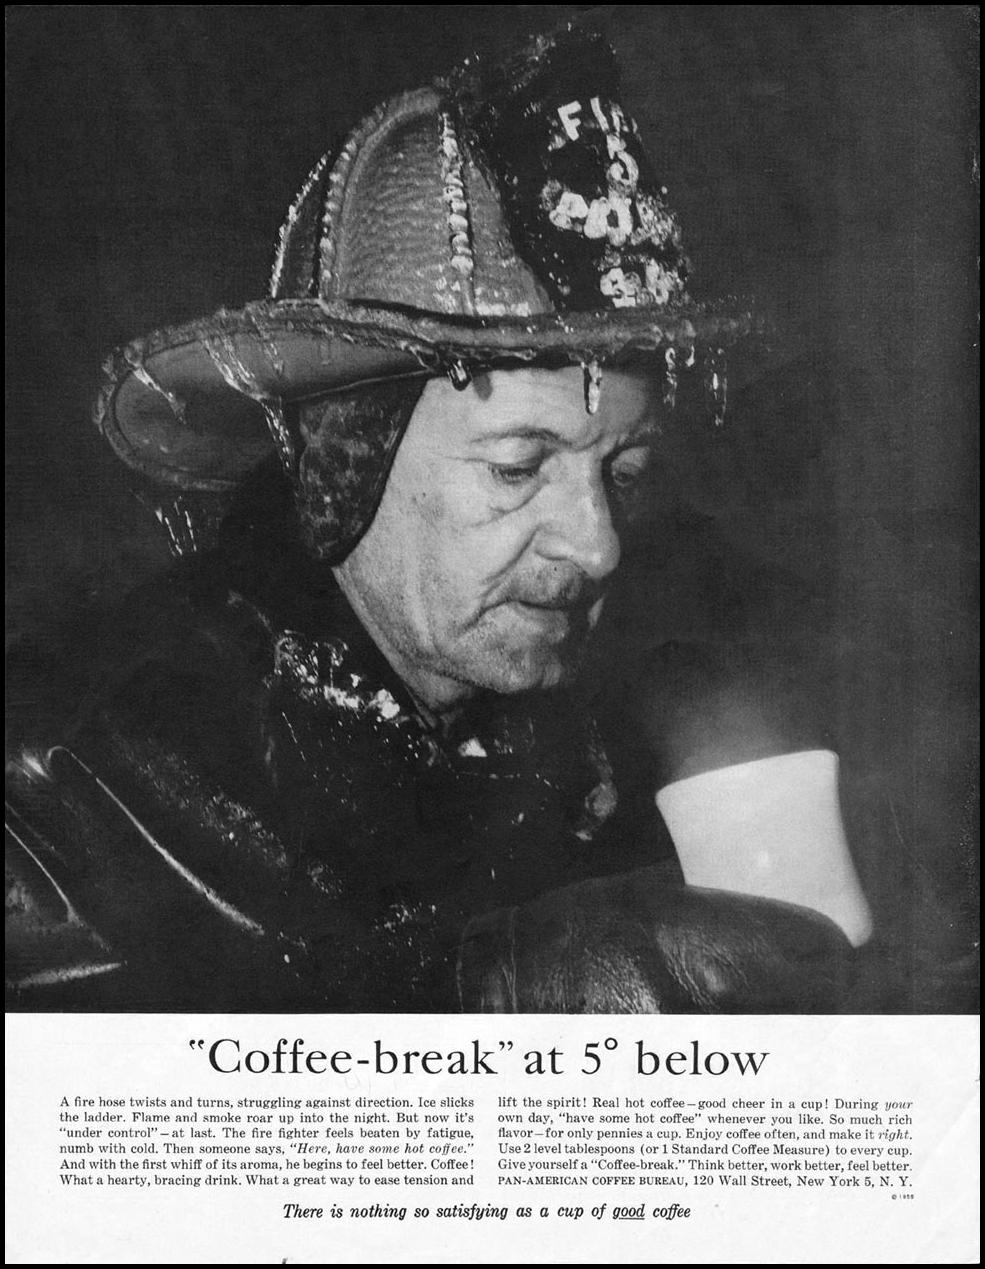 COFFEE SATURDAY EVENING POST 02/05/1955 p. 56